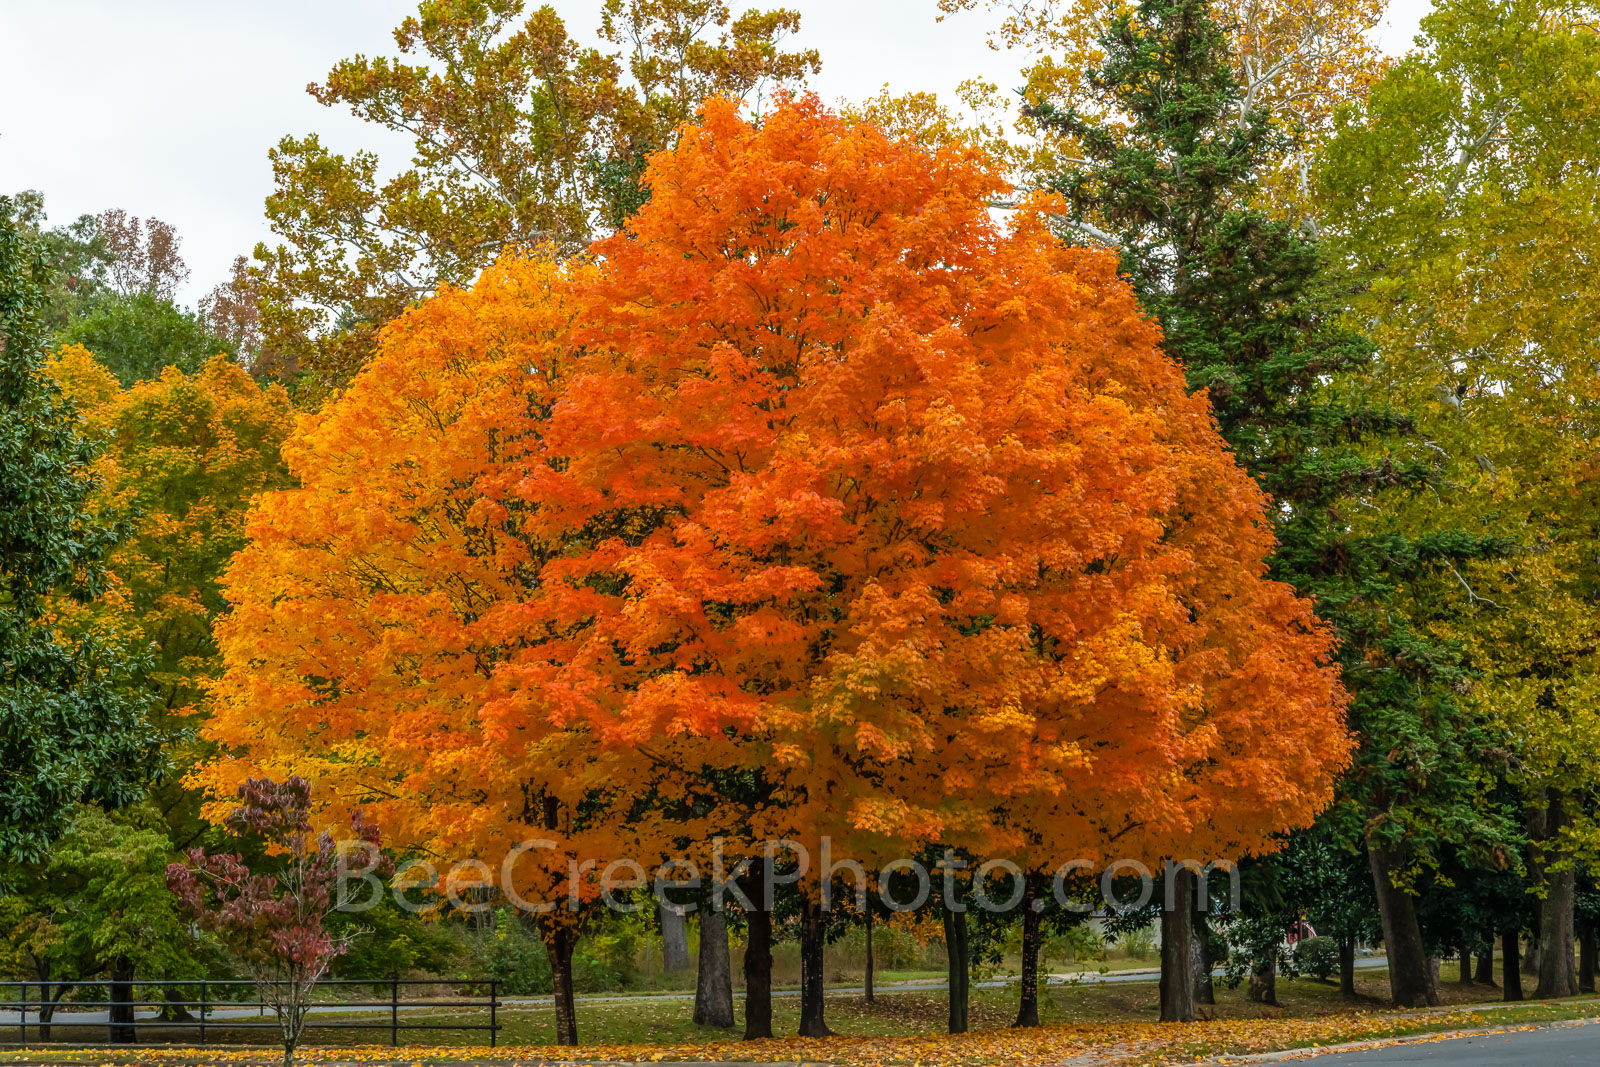 sugar maples, fall, autumn, trees, fall color, fall scenery, fall trees, maples, foliage, leaves, sun, yellow, orange, reds, colorful,, photo